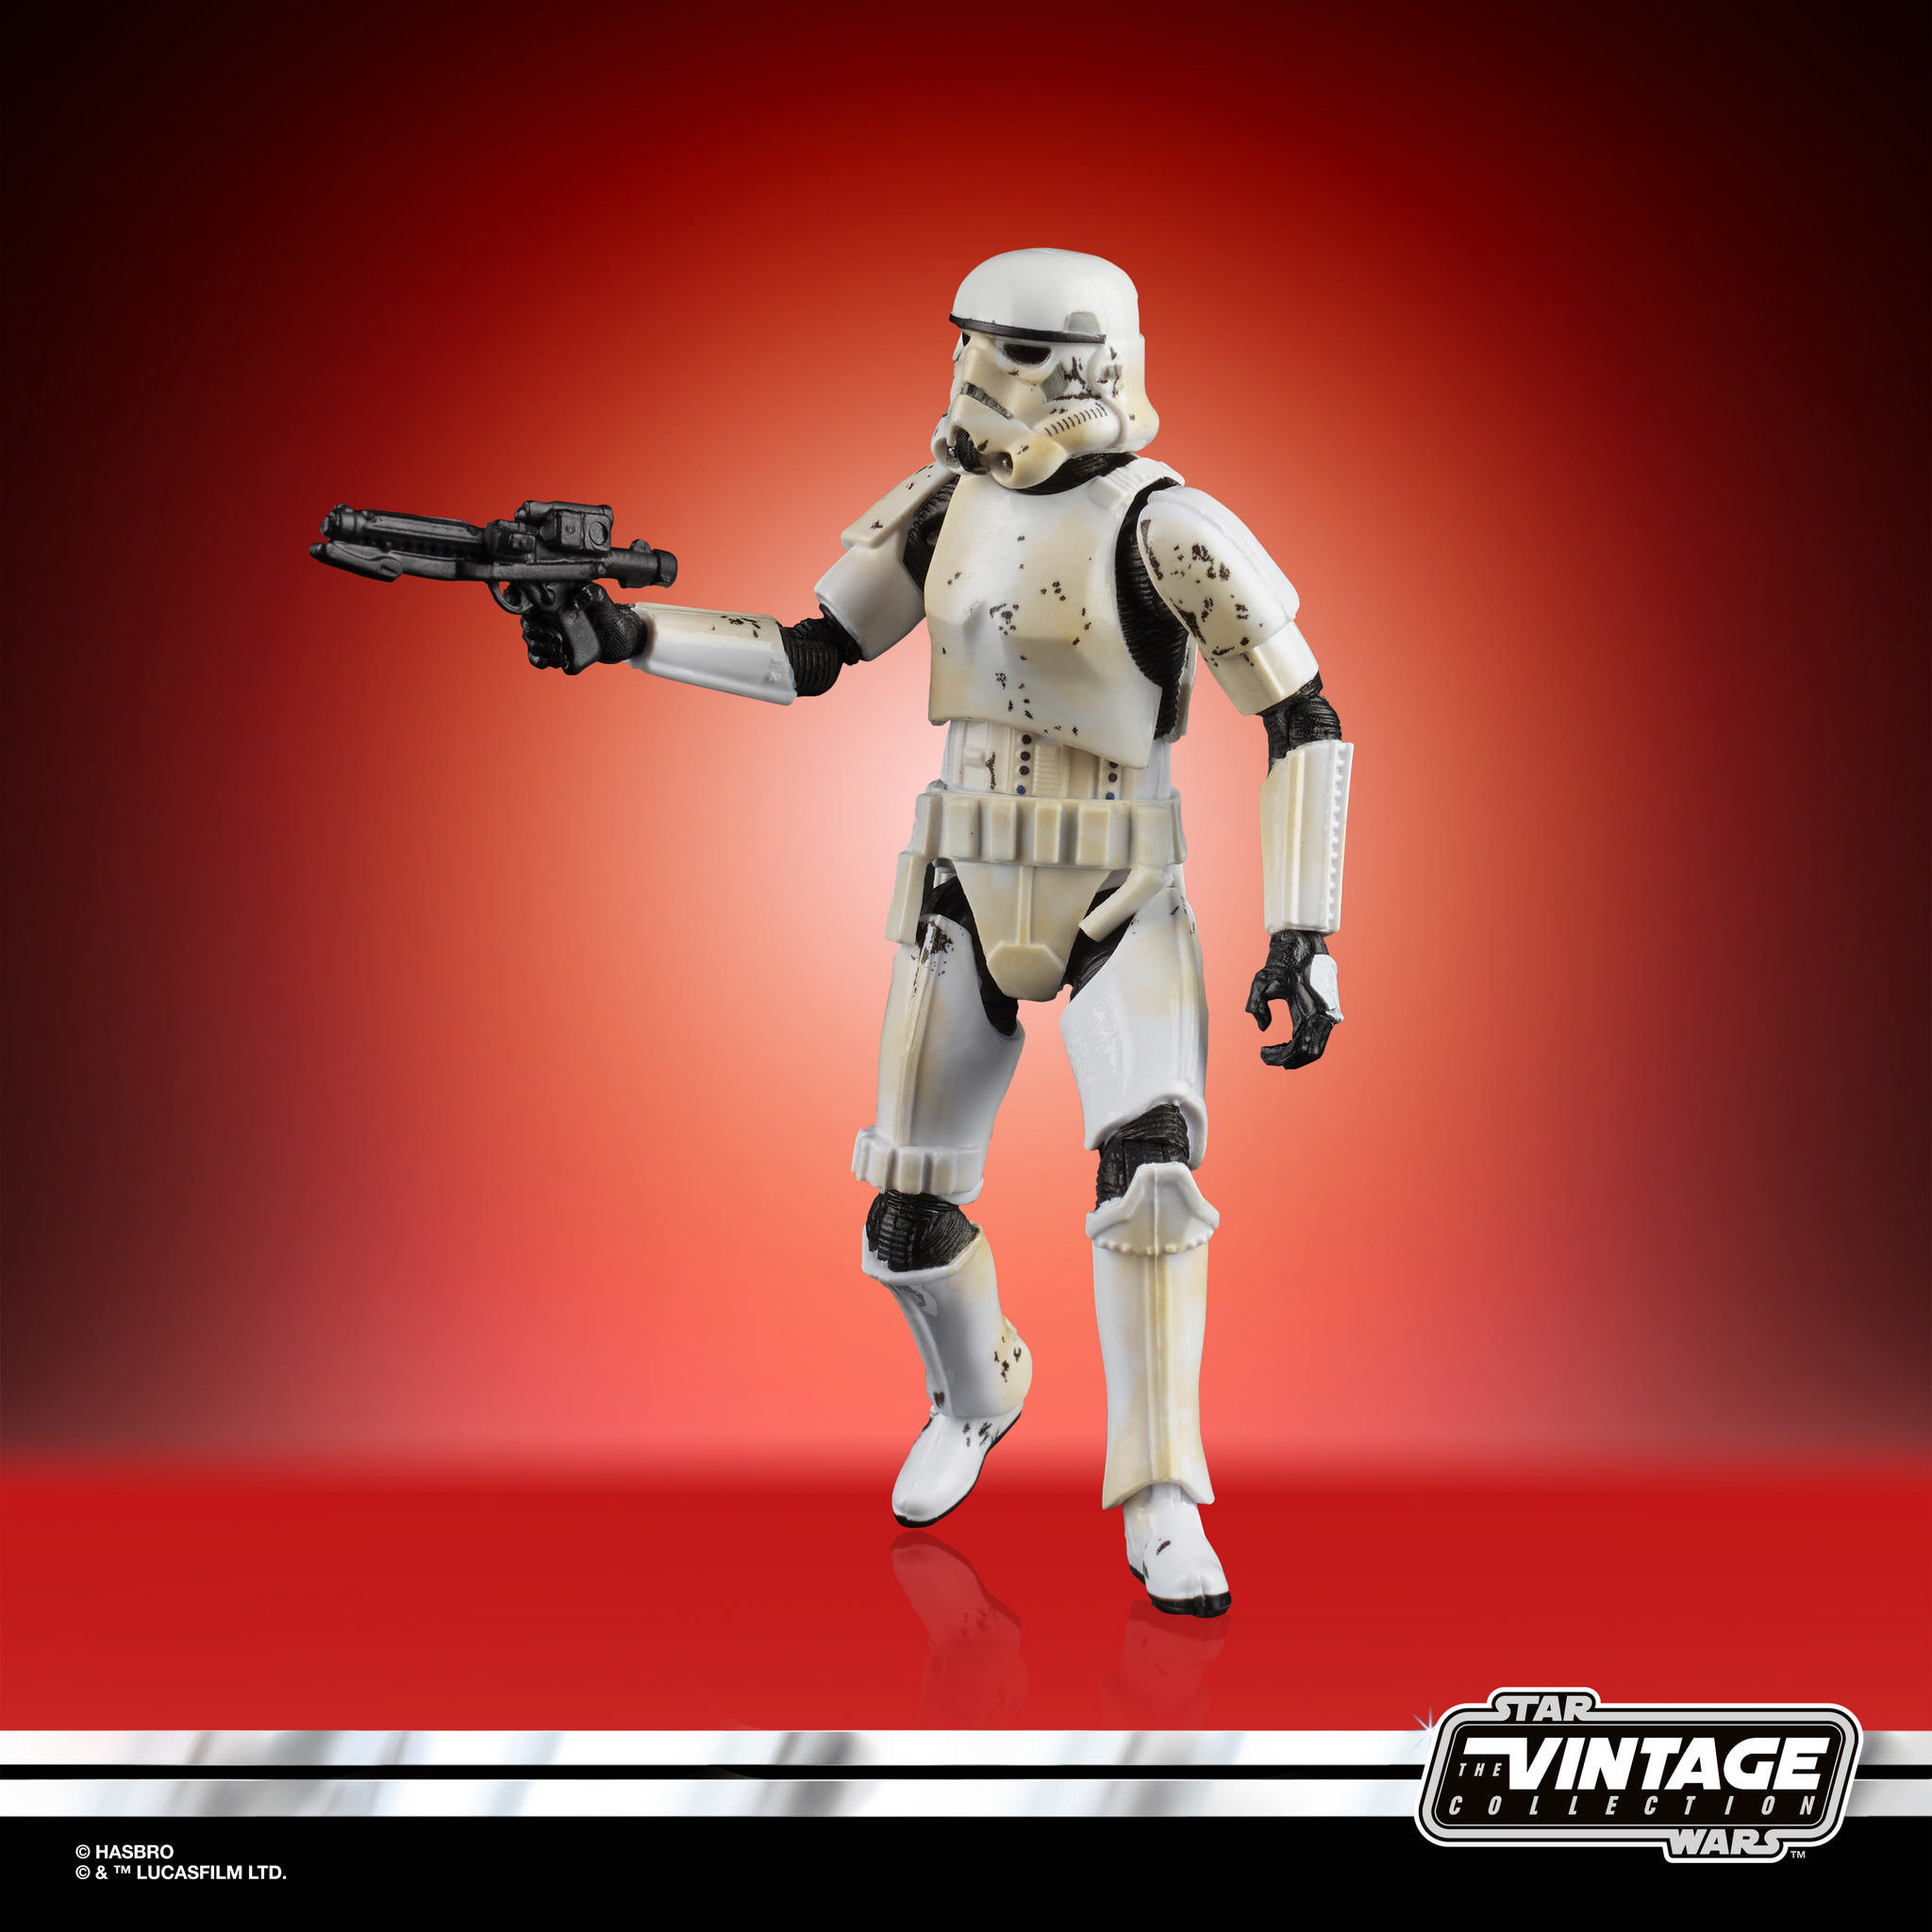 STAR WARS THE VINTAGE COLLECTION 3.75 INCH STORM TROOPER Figure 2